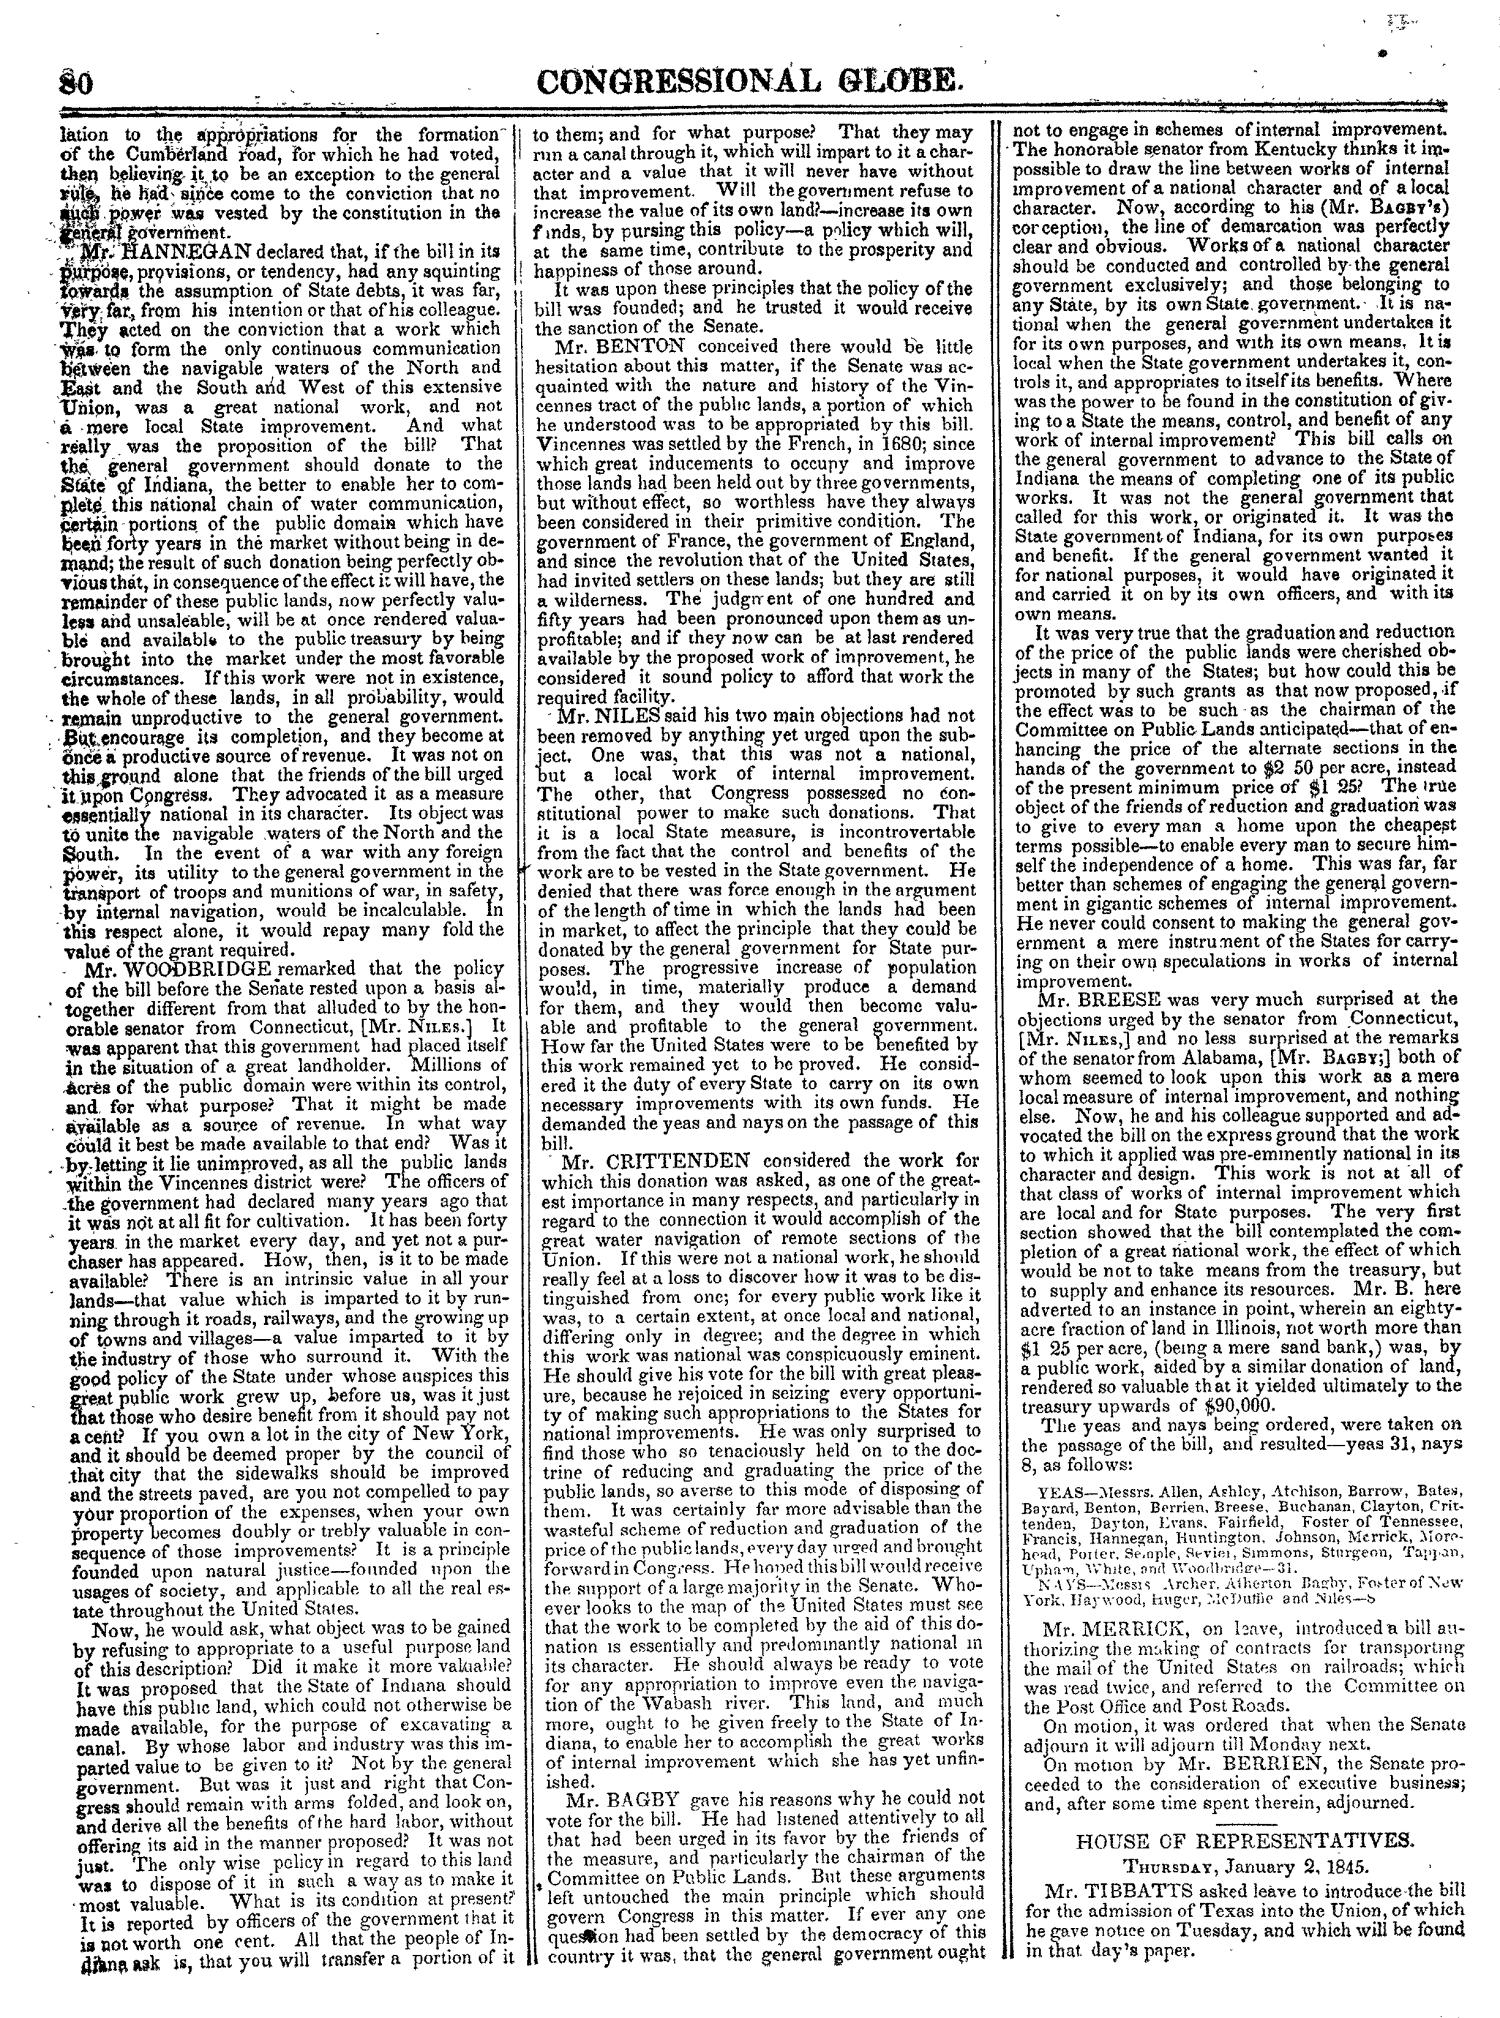 The Congressional Globe, Volume 14: Twenty-Eighth Congress, Second Session                                                                                                      80